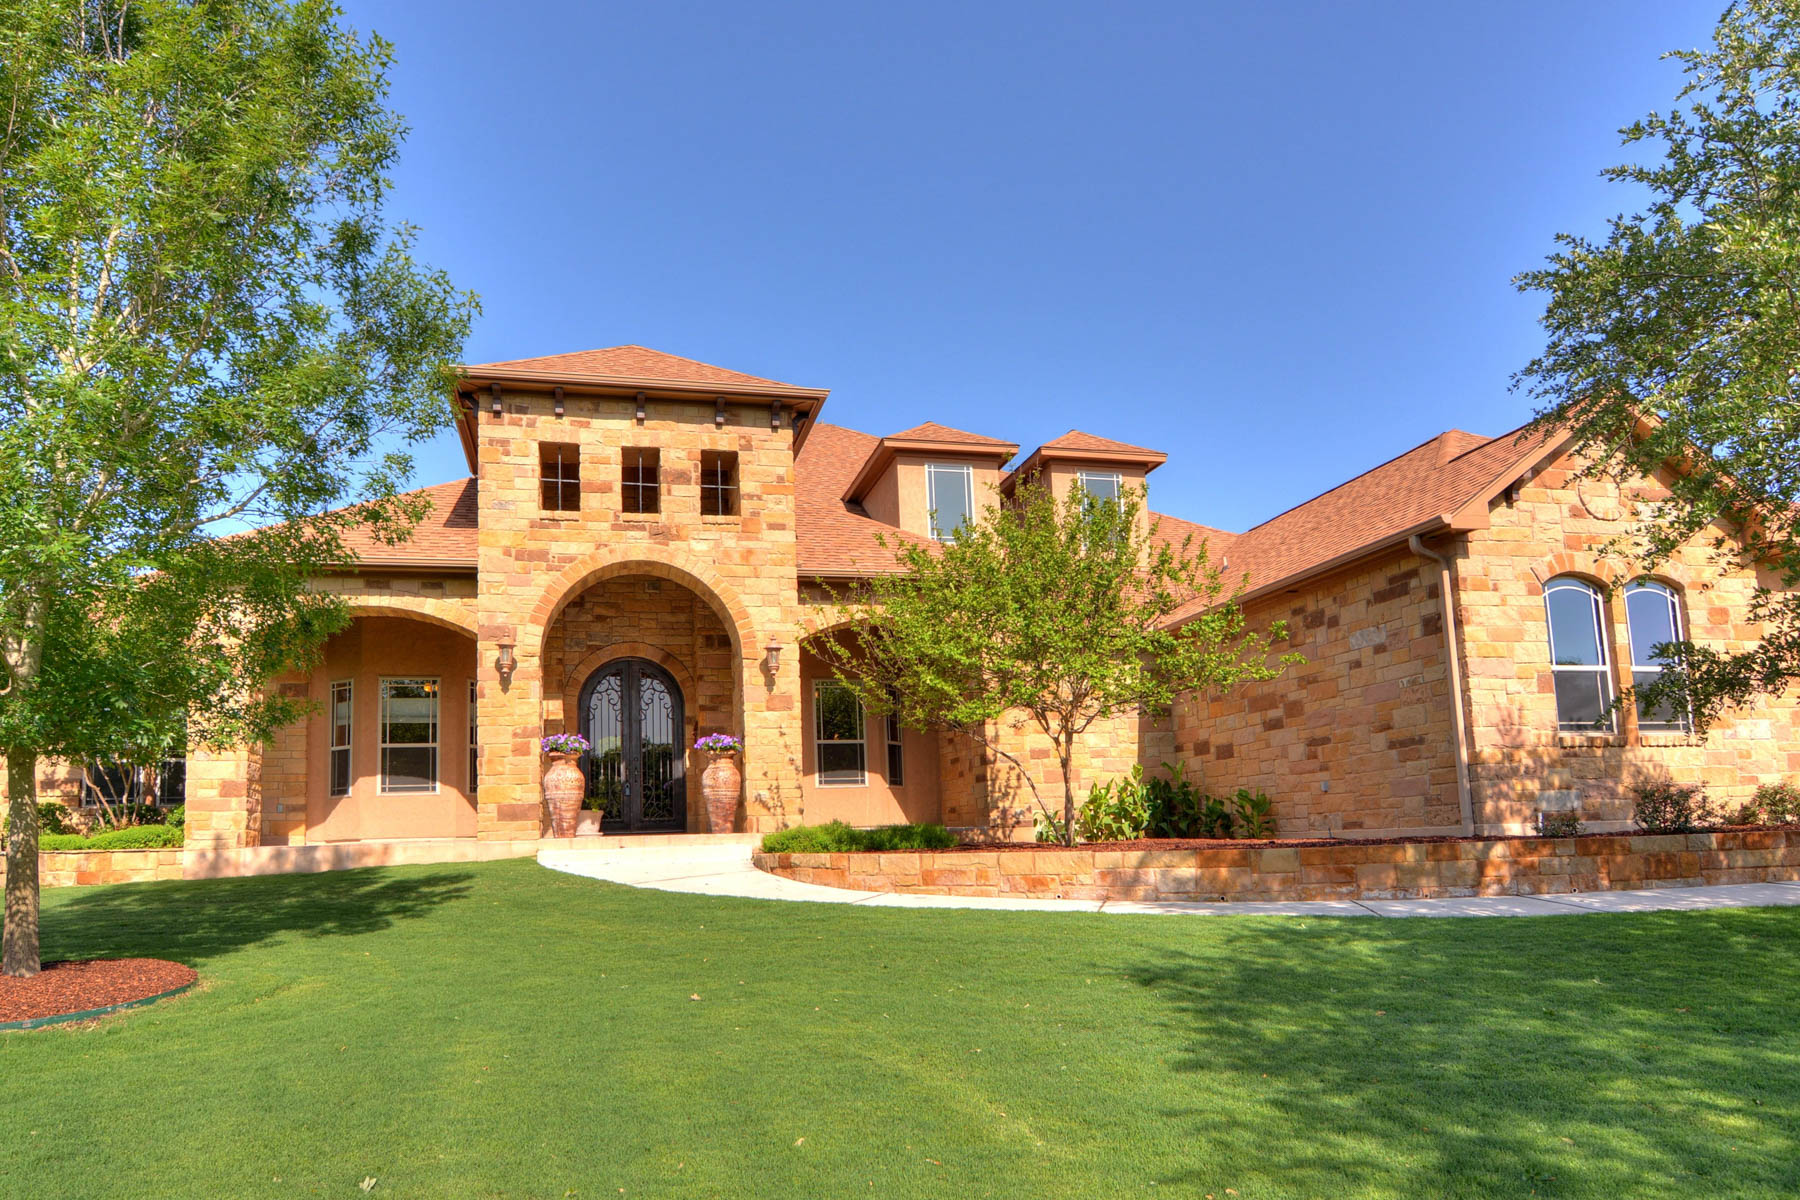 Single Family Home for Sale at Spectacular Estate in Rockwall Ranch 26923 Rockwall Pkwy New Braunfels, Texas 78132 United States